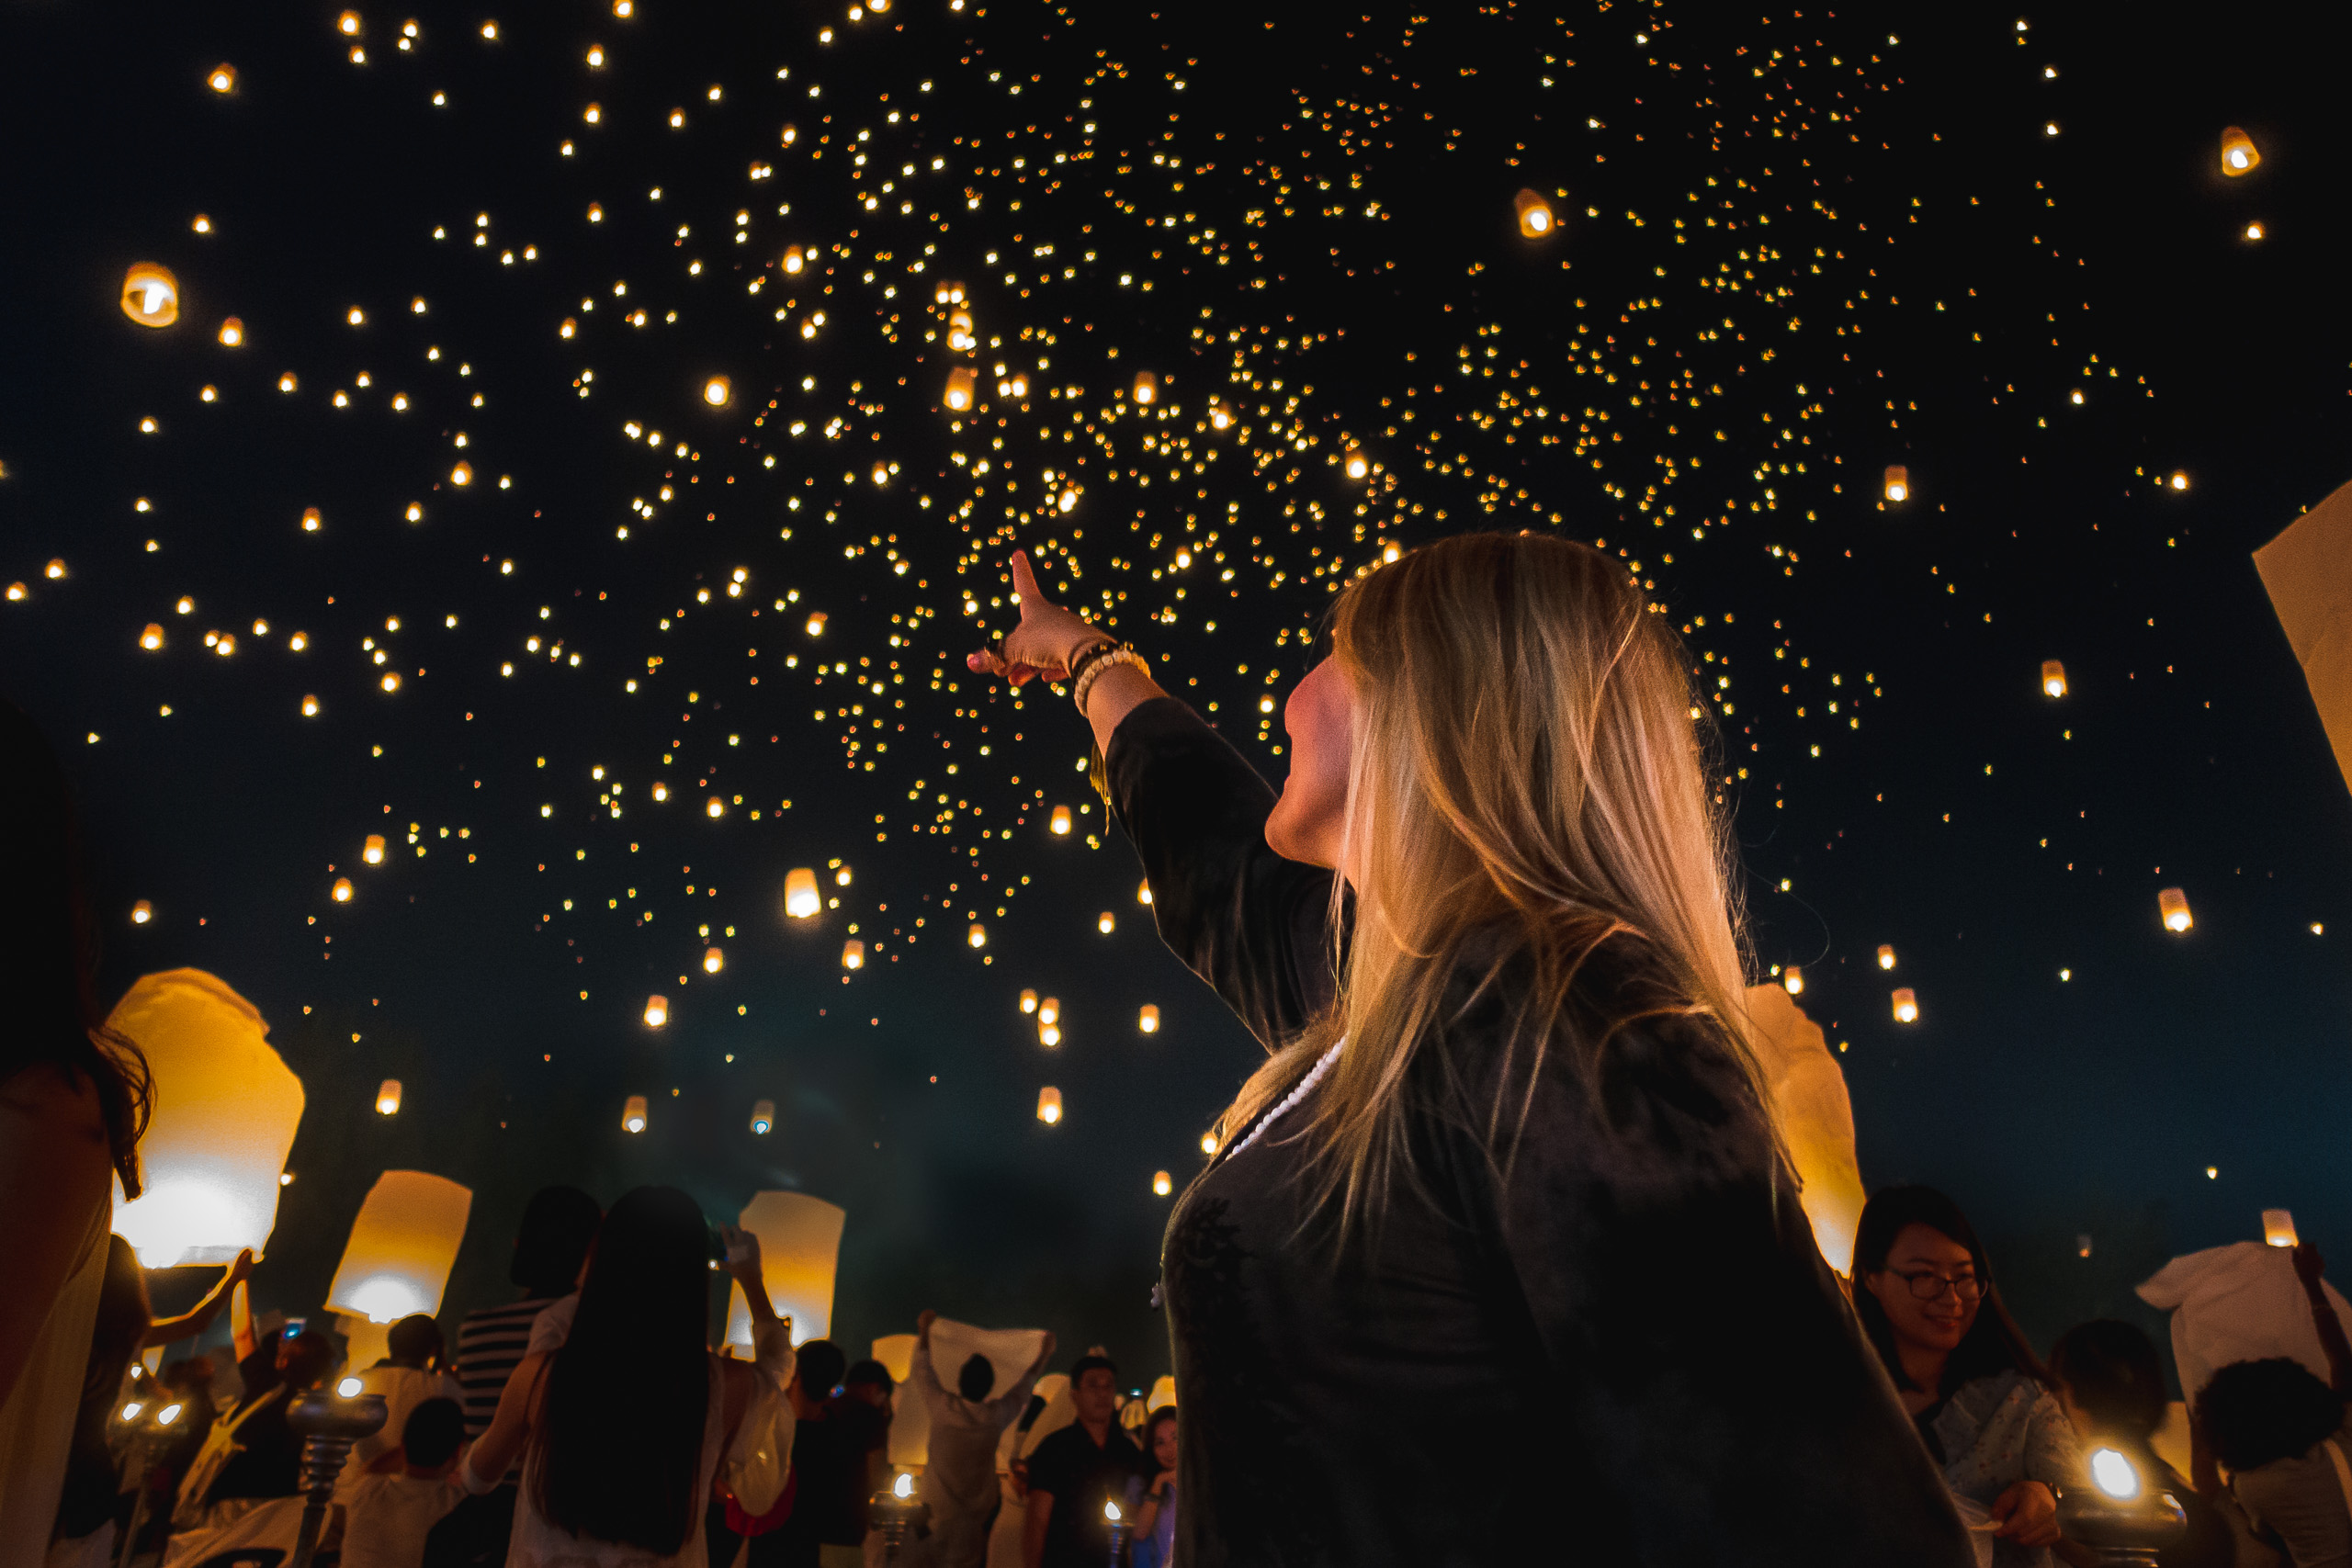 Floating Lantern Festival Chiang Mai Thailand Humble And Free